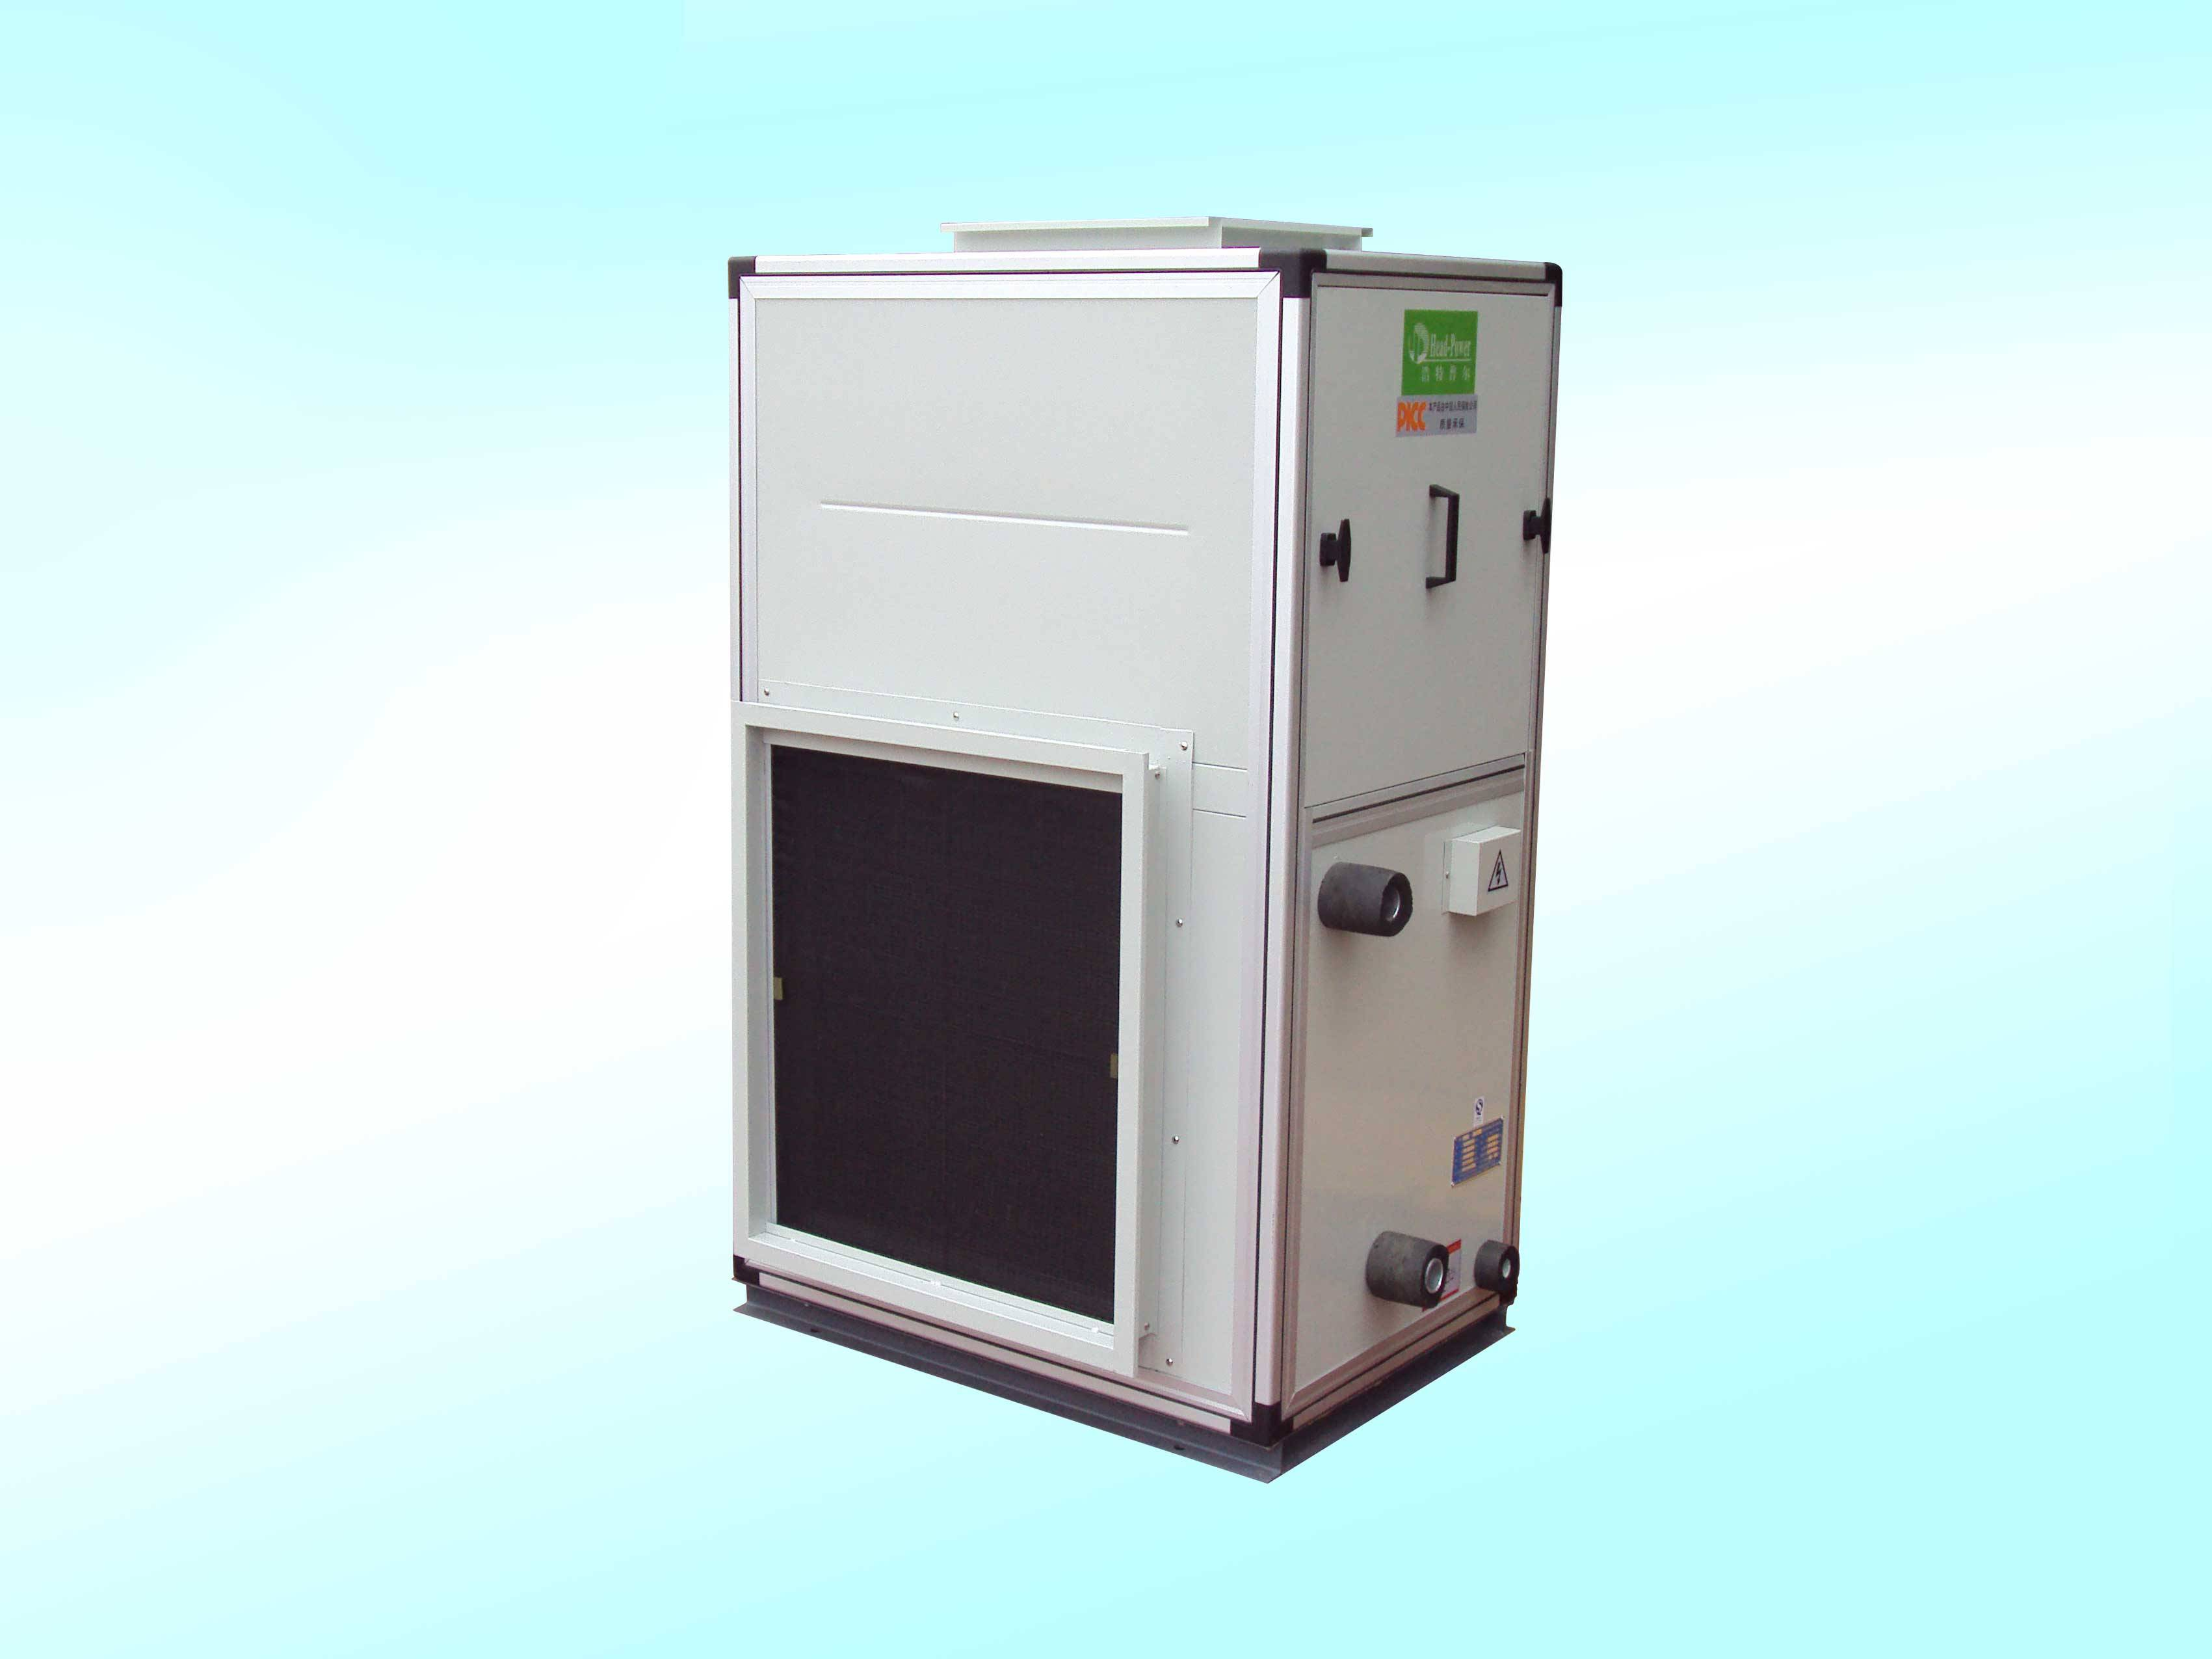 Vertical Discharge Air Handlers